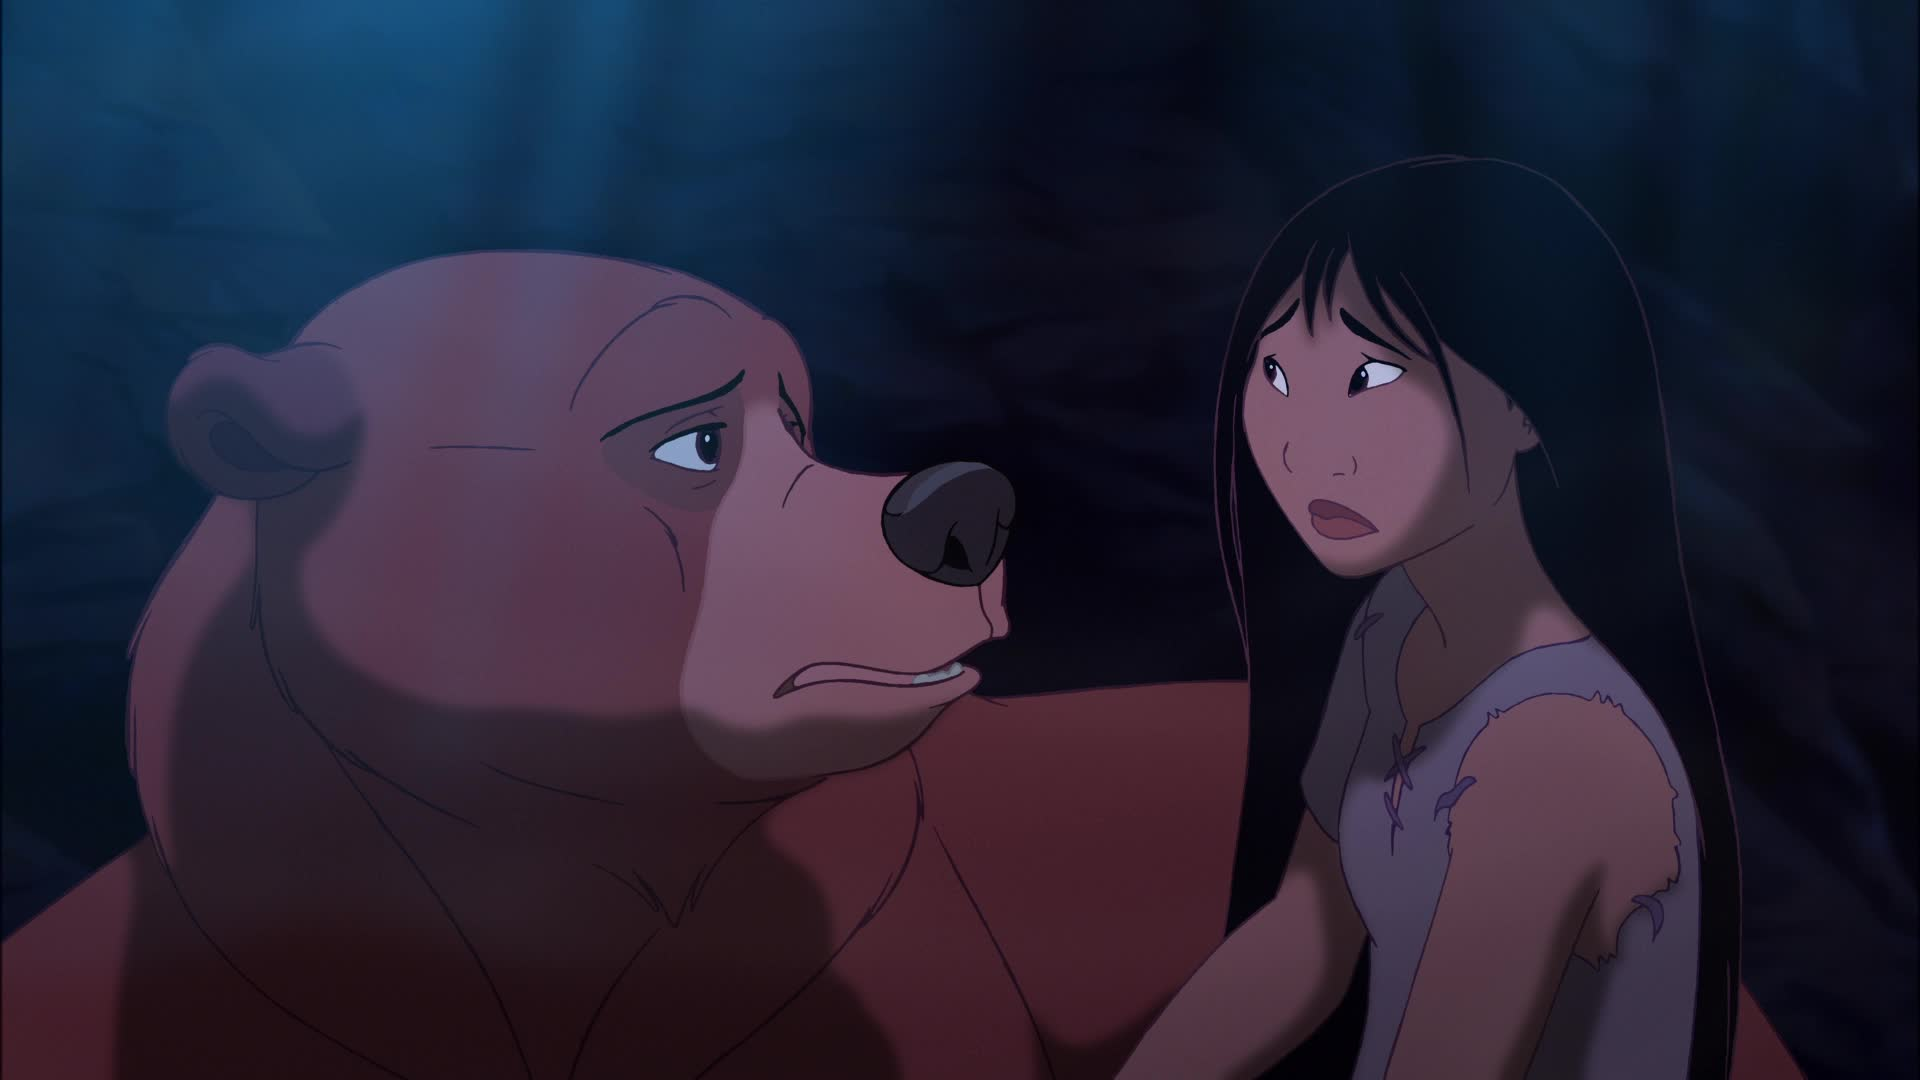 Pin by Frozenfan on Disney | Pinterest | Brother bear and Disney magic